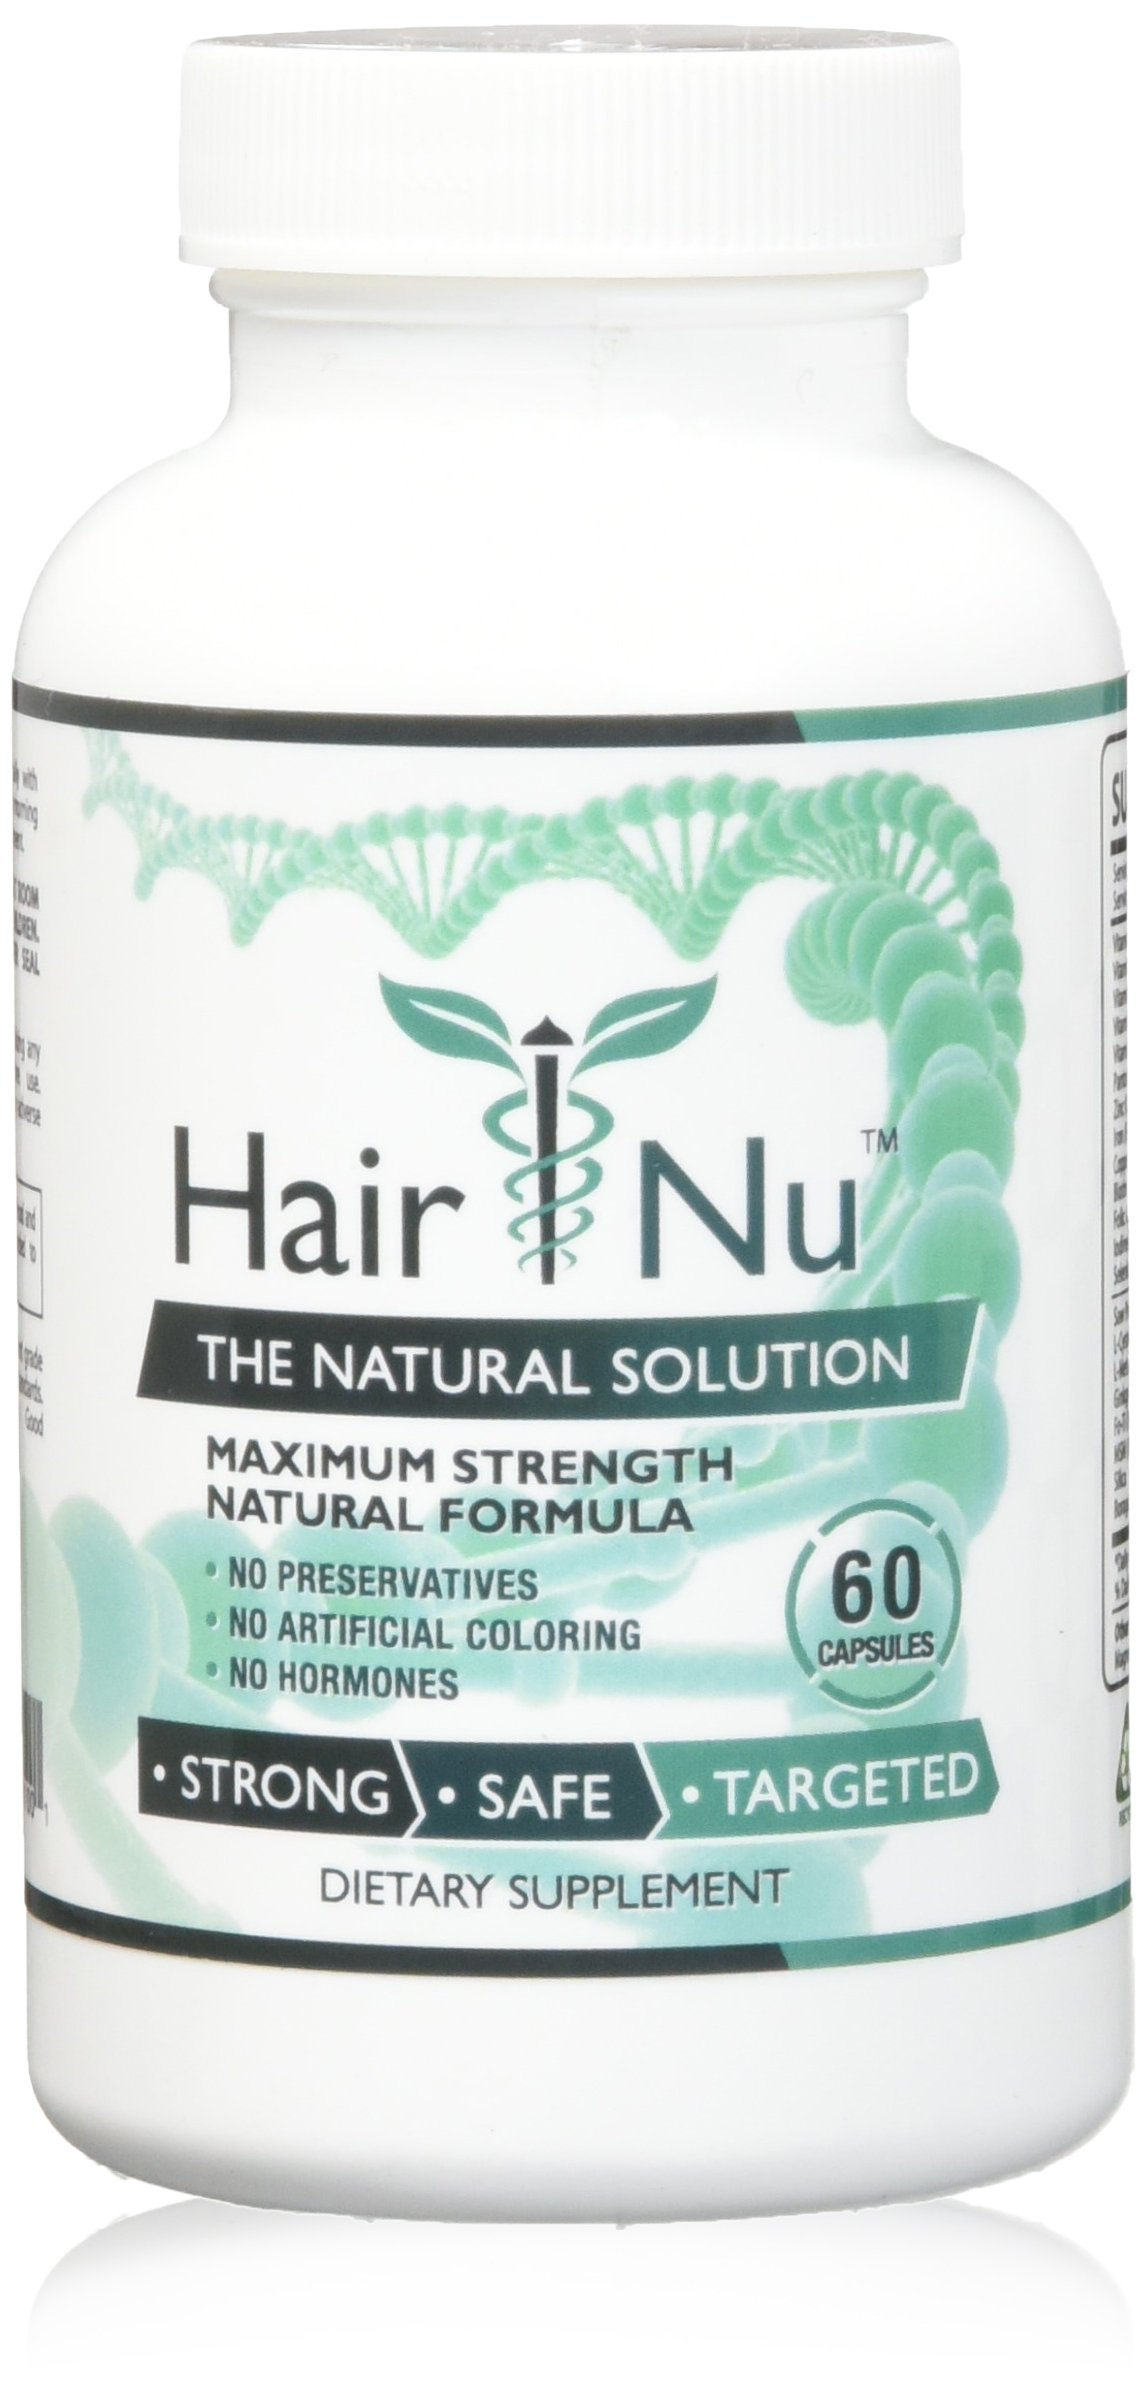 HairNu Natural Hair Growth Solution / Dietary Supplement, 1 Bottle – 60 Capsules by HairNu (Image #1)